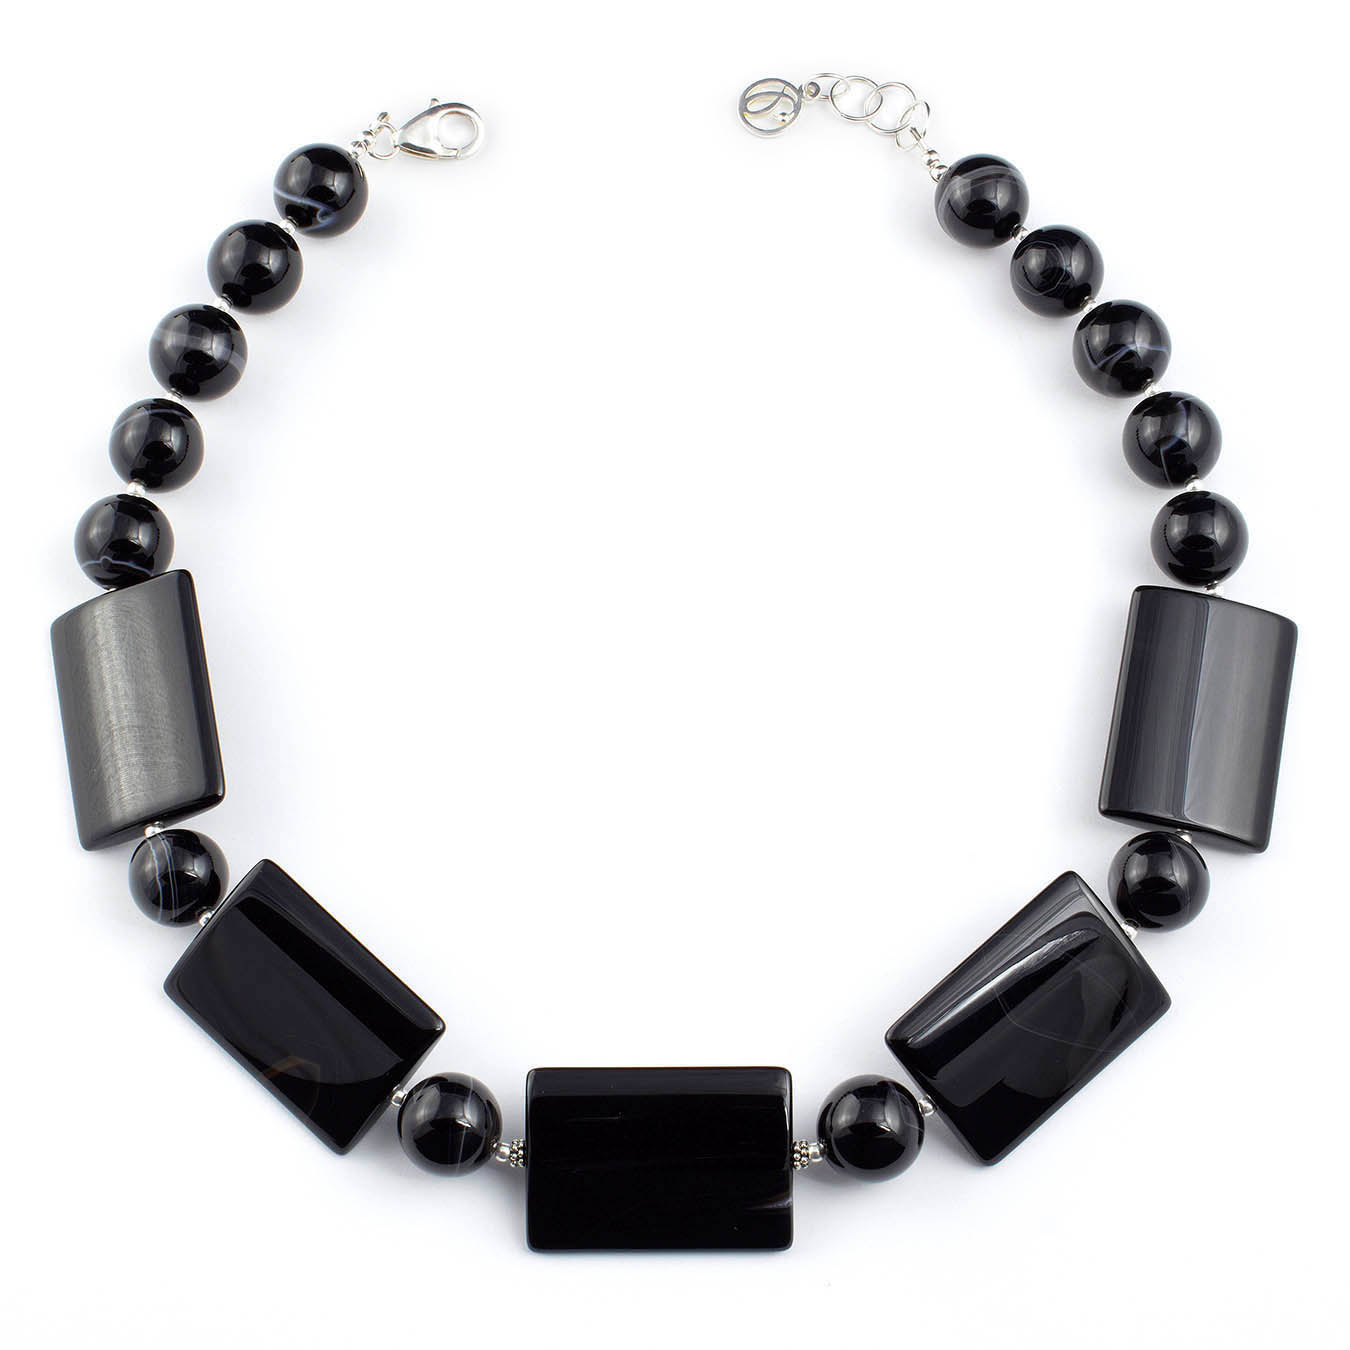 Collar necklace set made of chunky black lace agate and silver accents